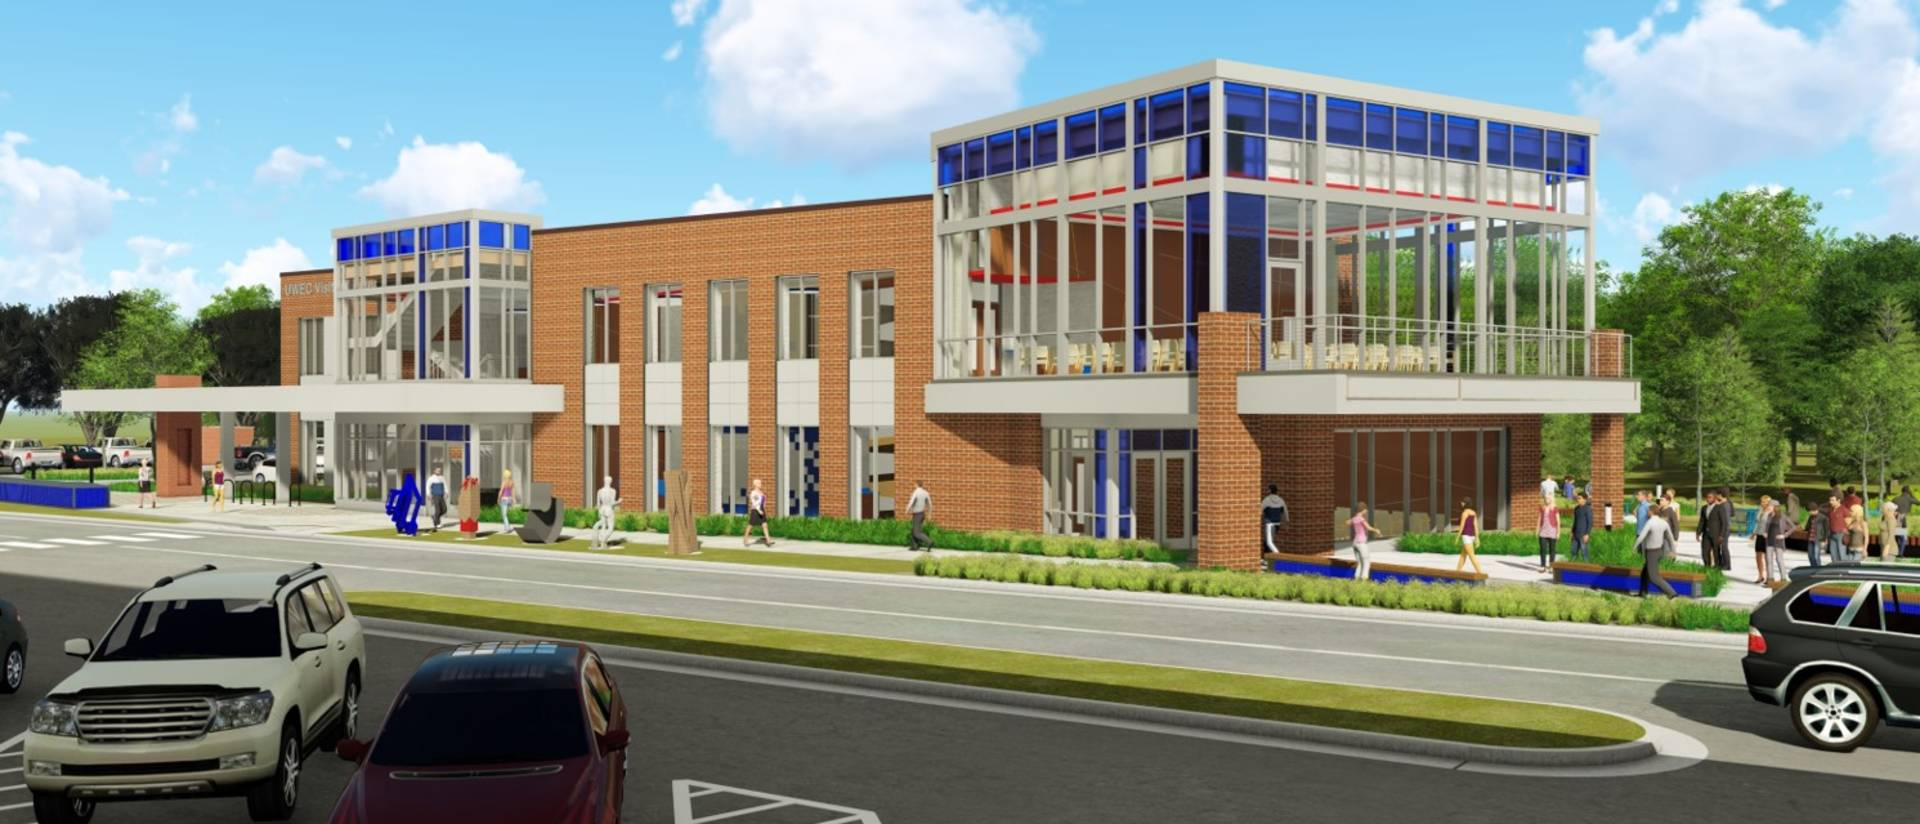 Rendering of UW-Eau Claire Visitor and Admissions Center